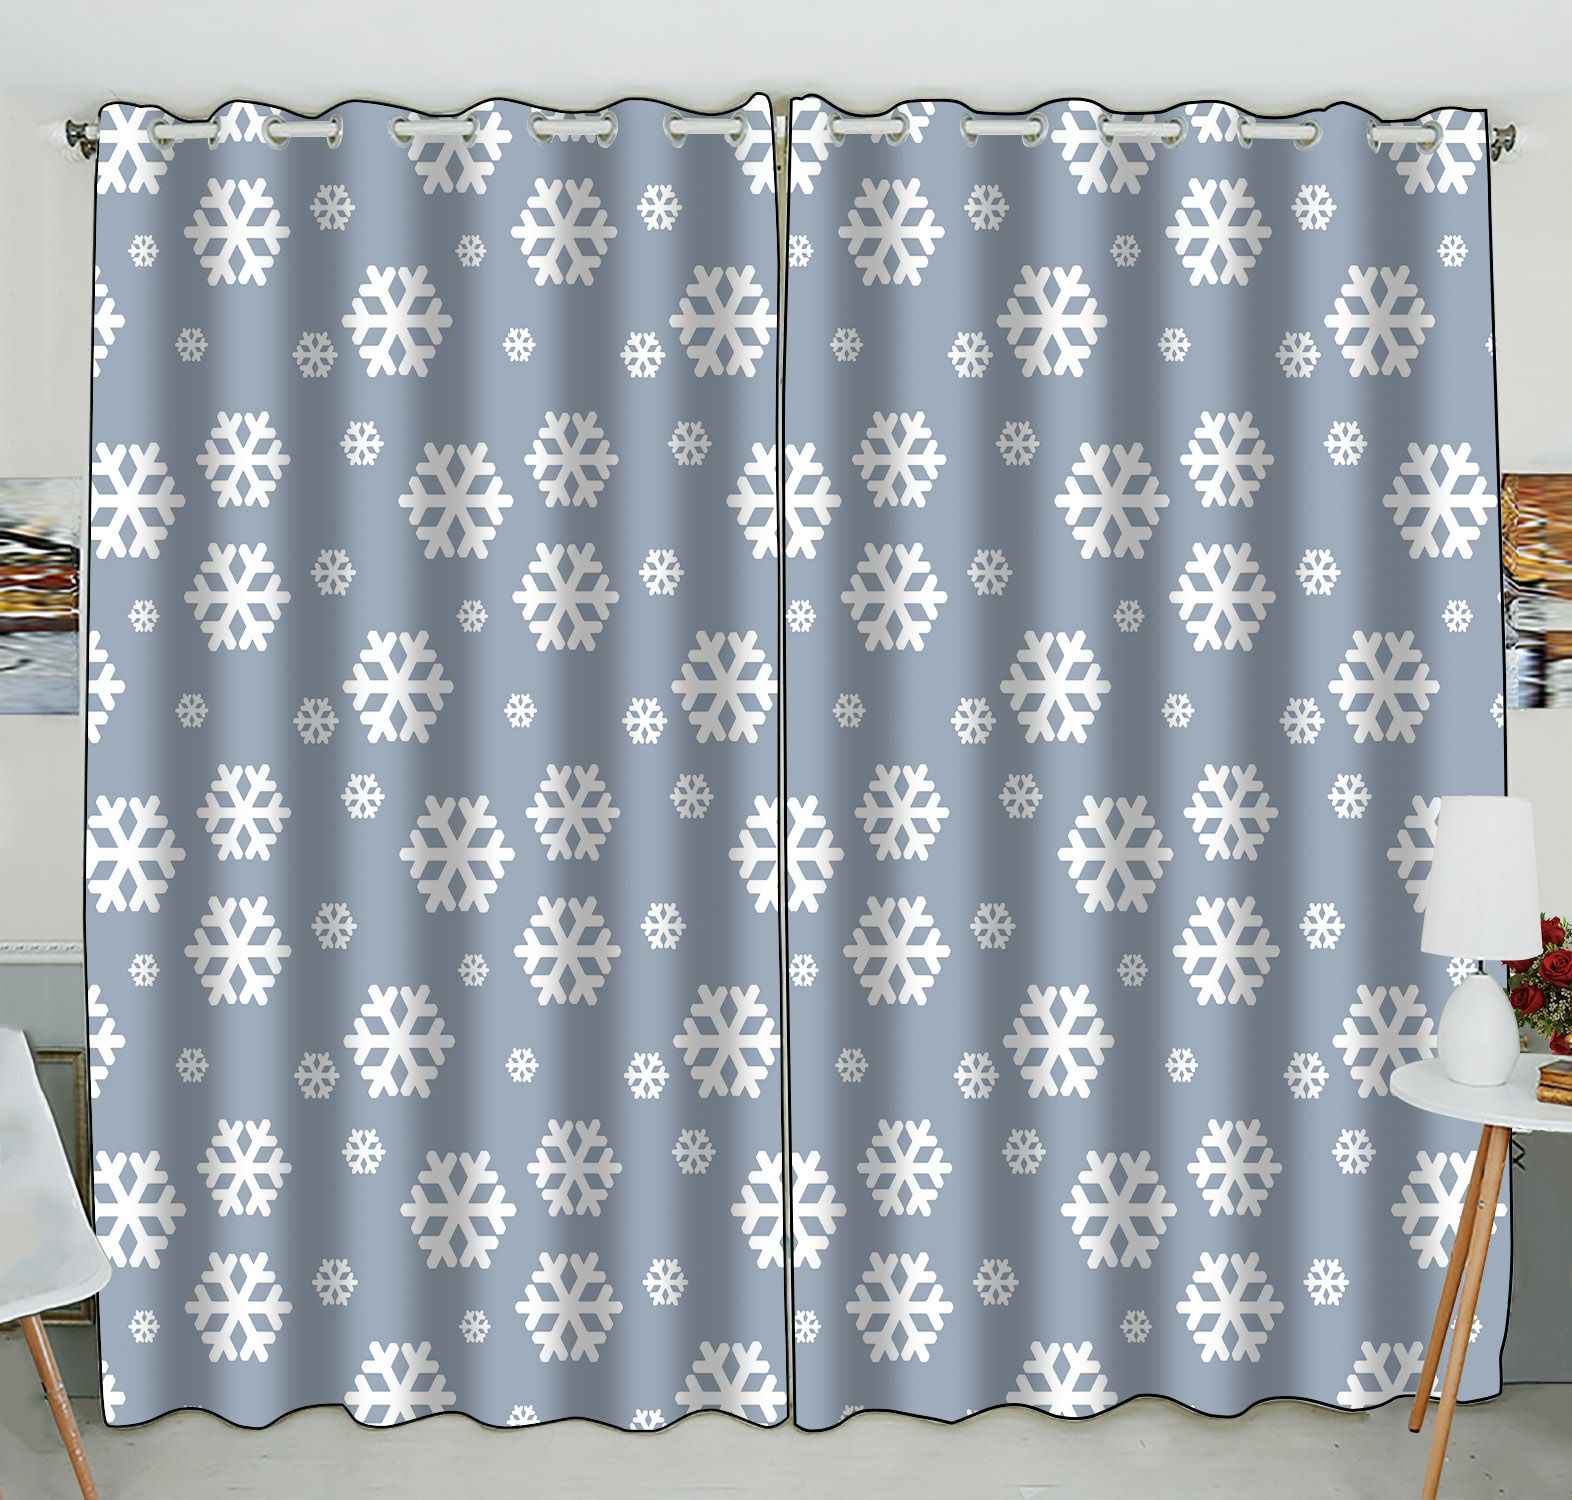 ZKGK Snowflake Window Curtain Drapery/Panels/Treatment For Living Room Bedroom Kids Rooms 52x84 inches Two Panel